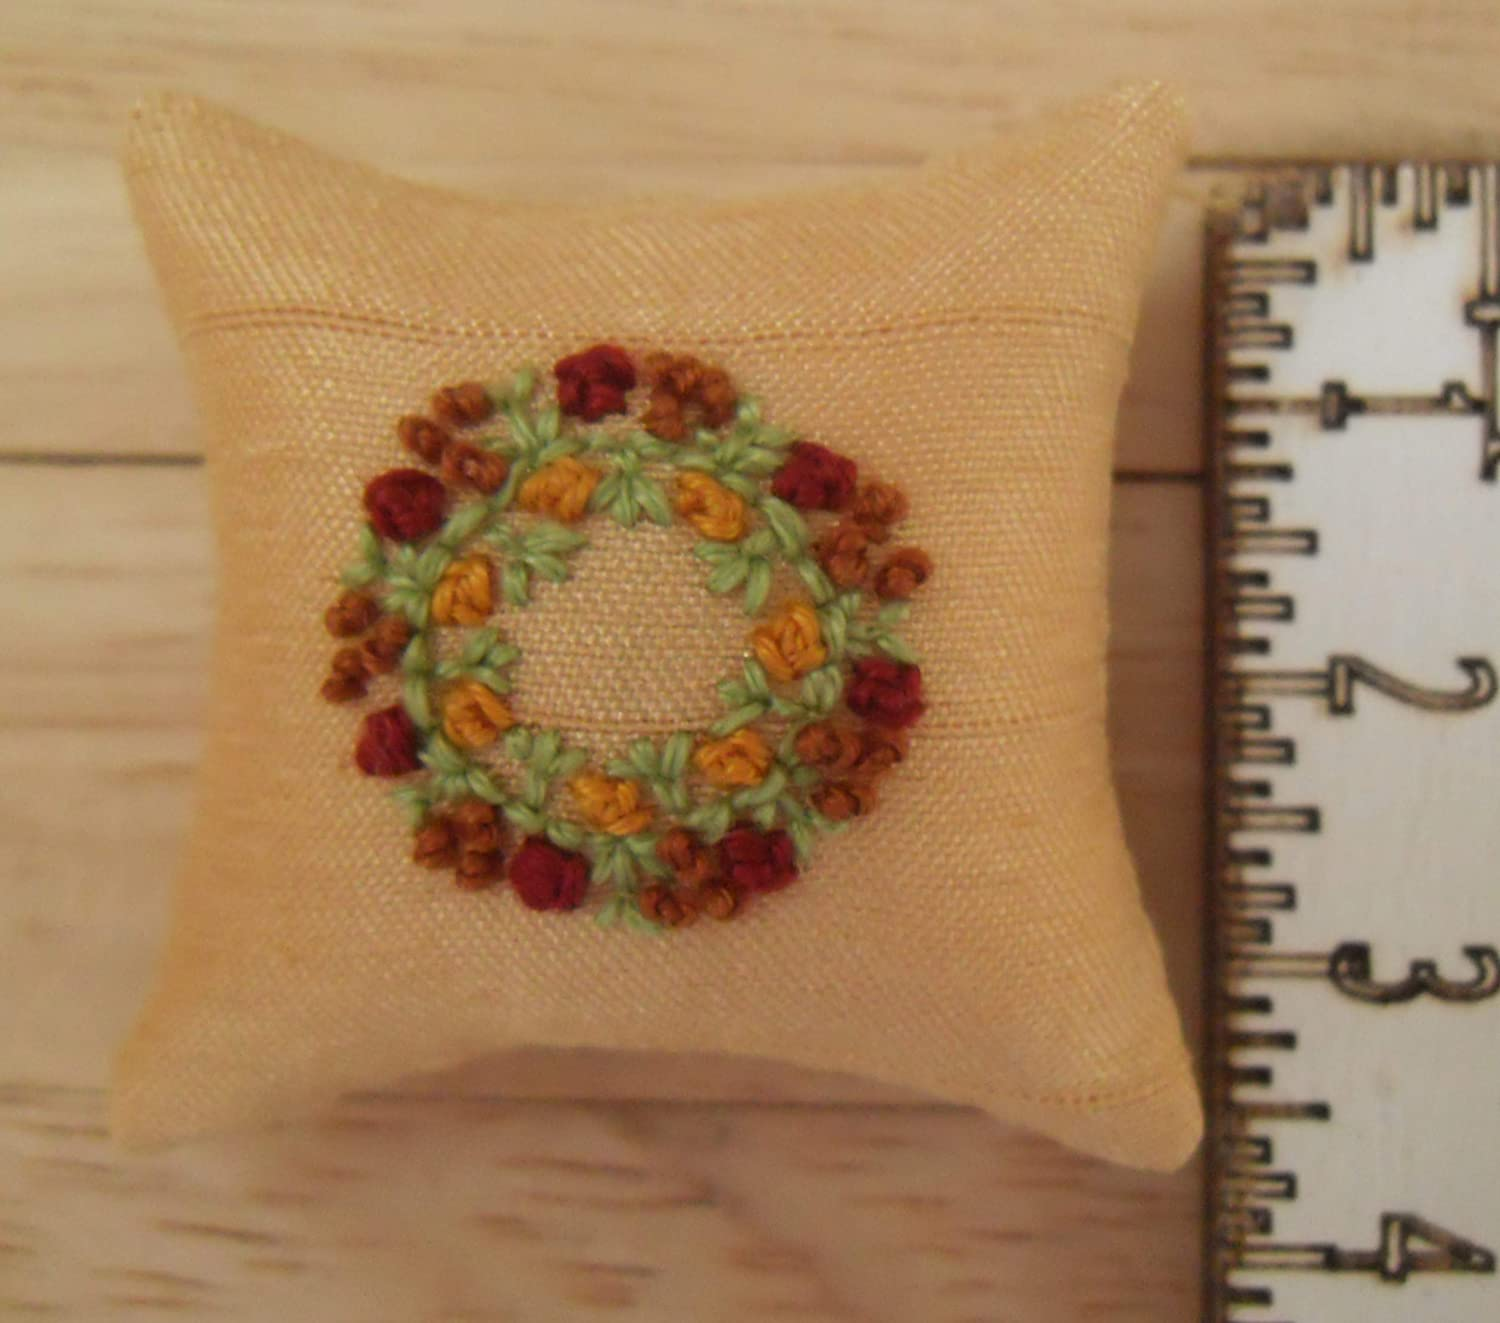 1//12th scale Dolls House Hand Embroidered Garland Design Gold Cushions Red and Gold Flowers and Berries